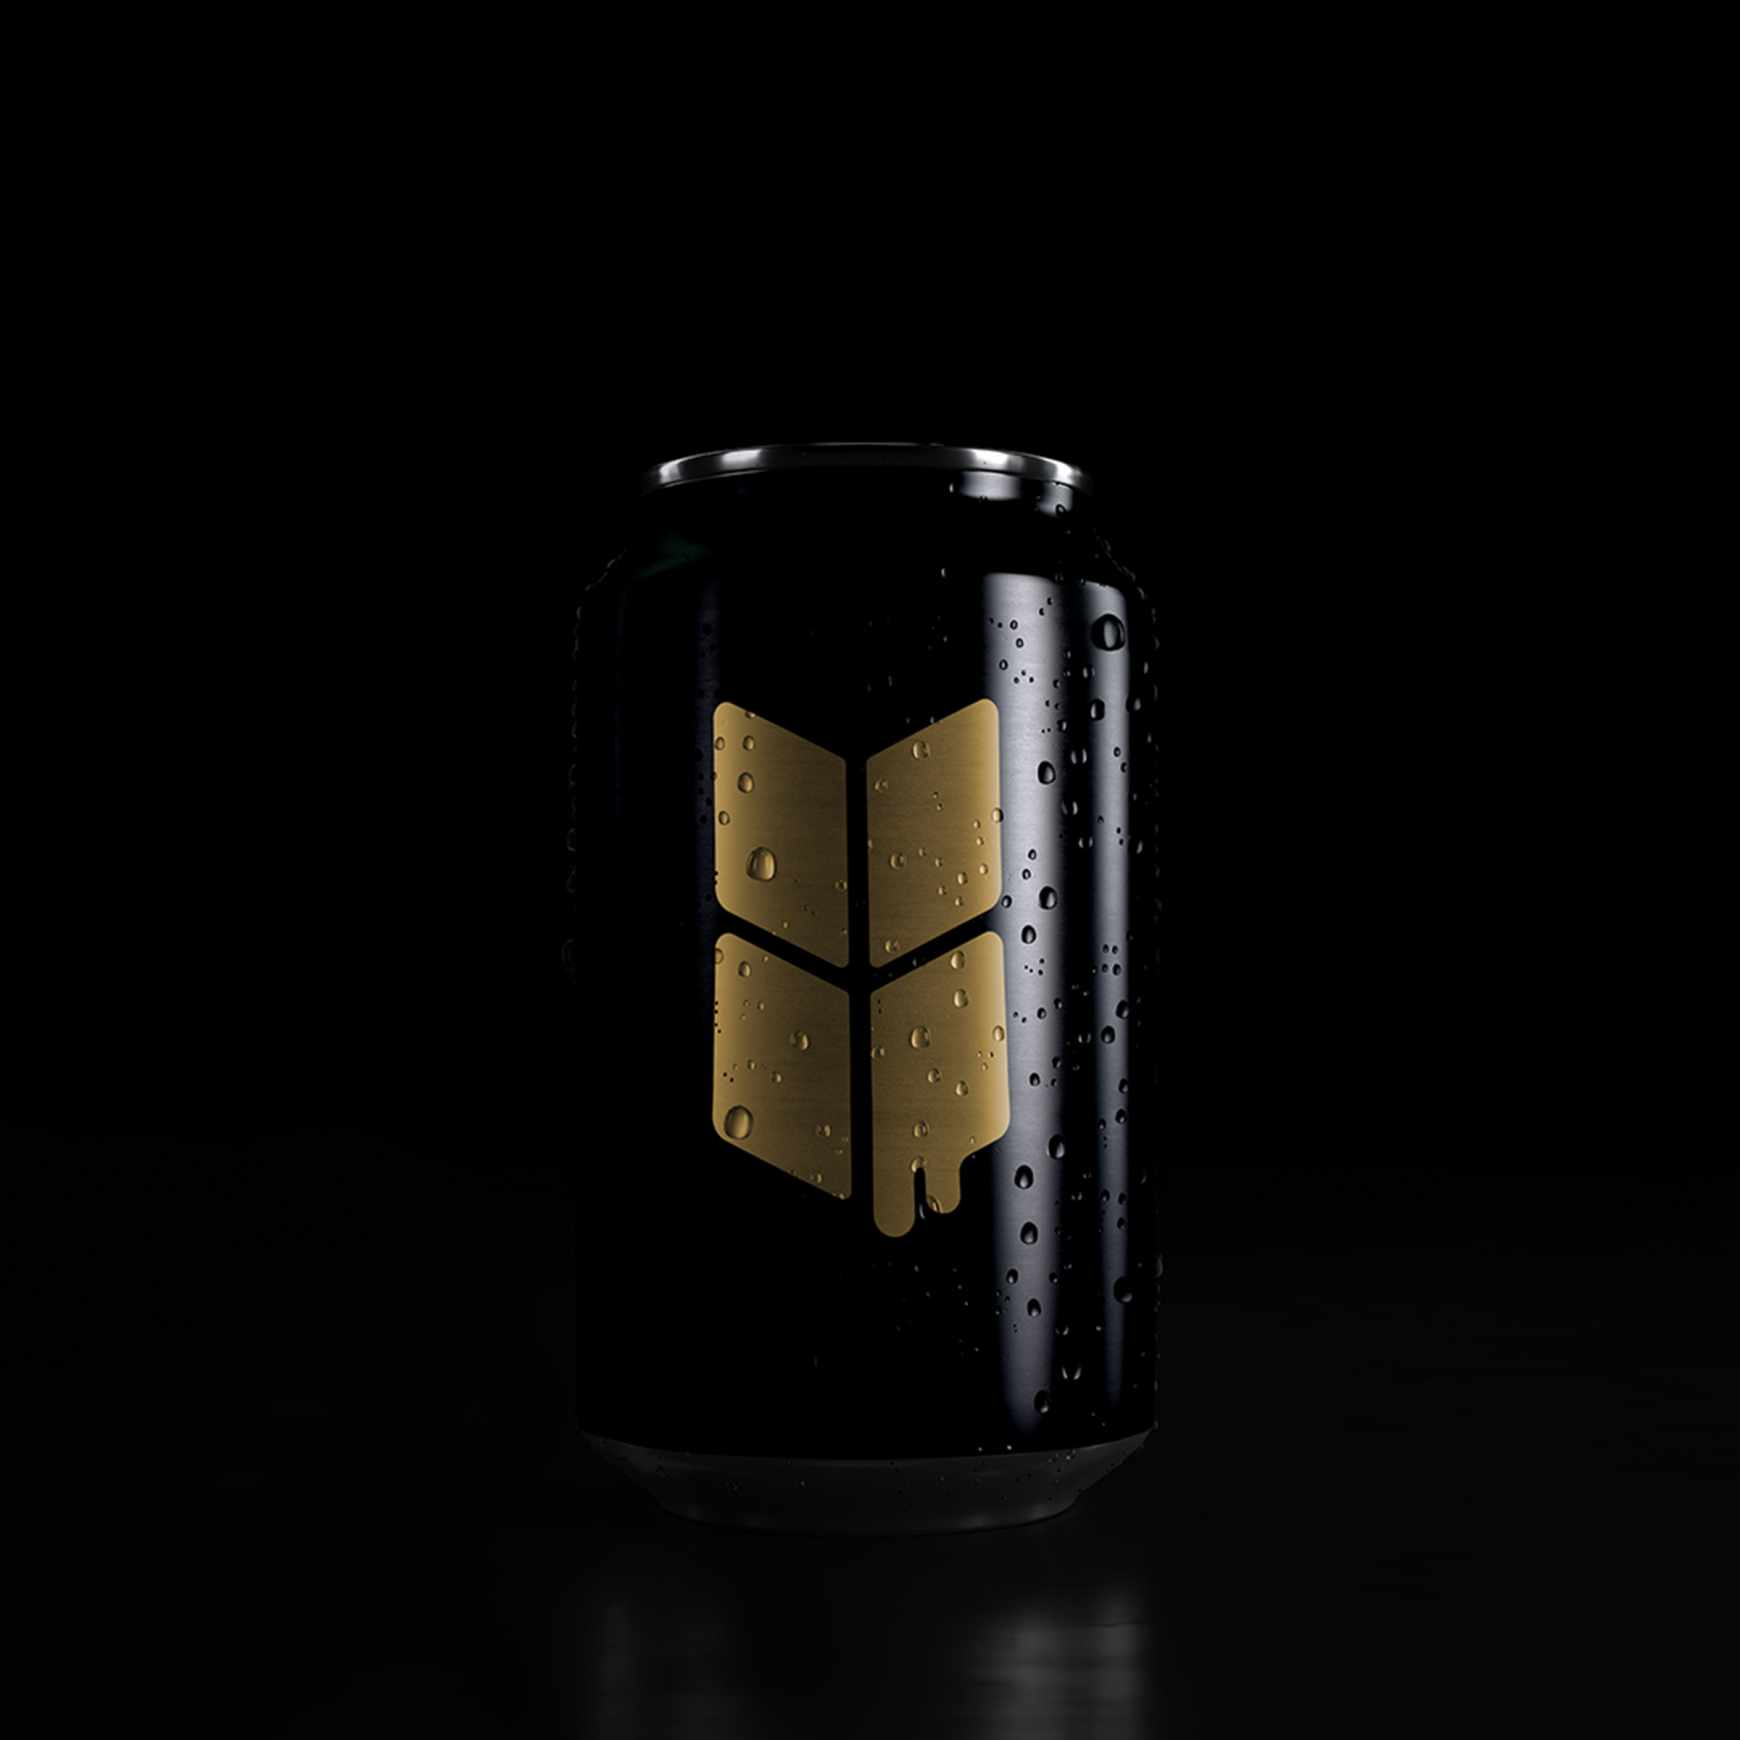 Black Butter Design Ad - Brand Identity